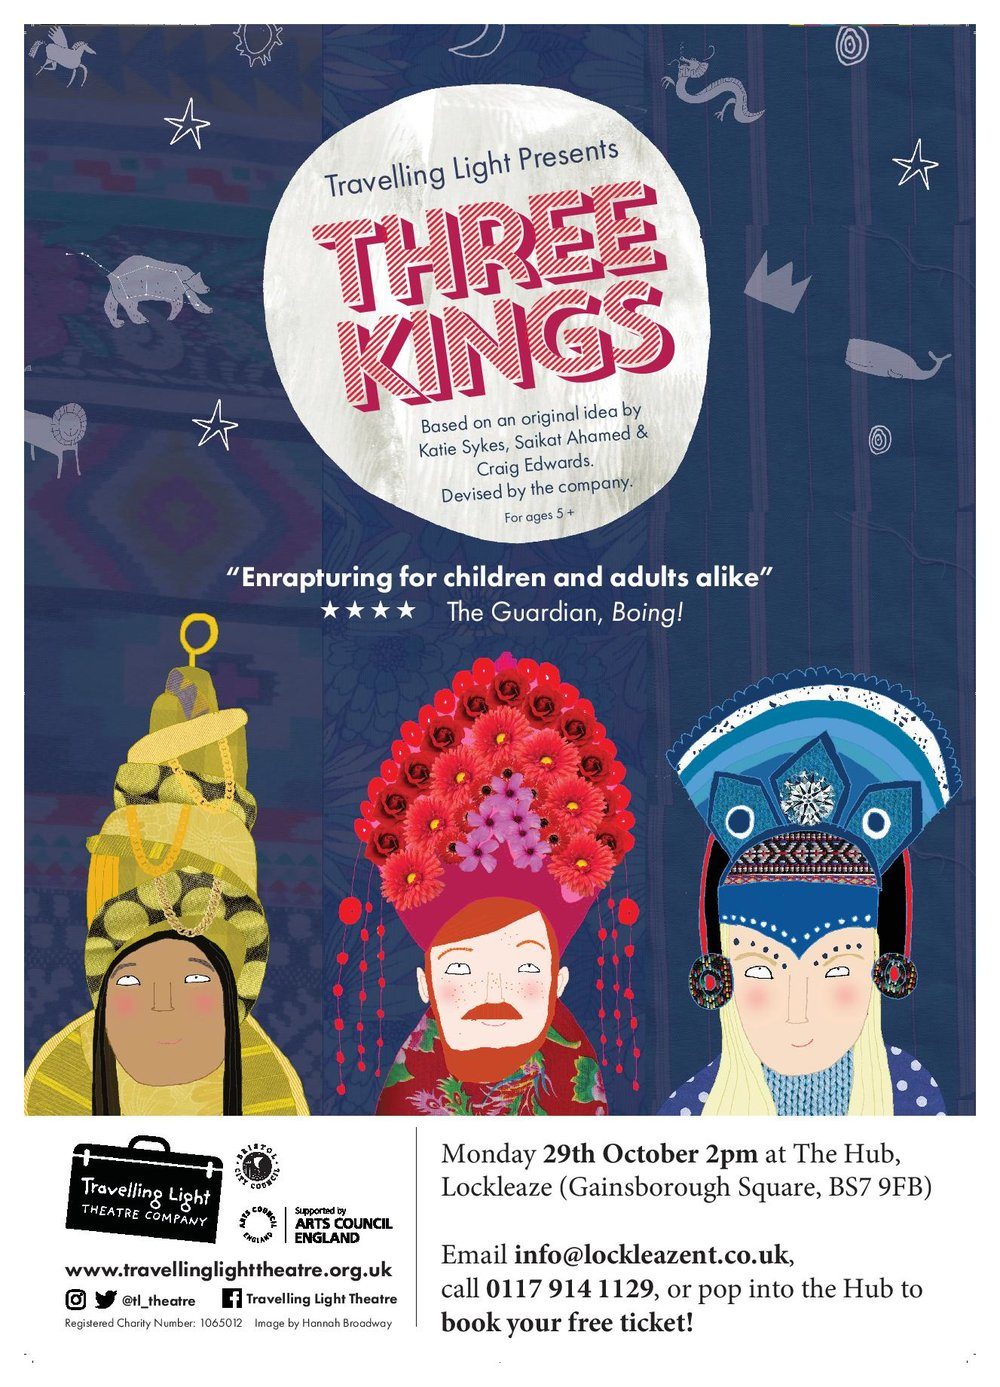 3 kings poster Lockleaze no margins-page-001.jpg